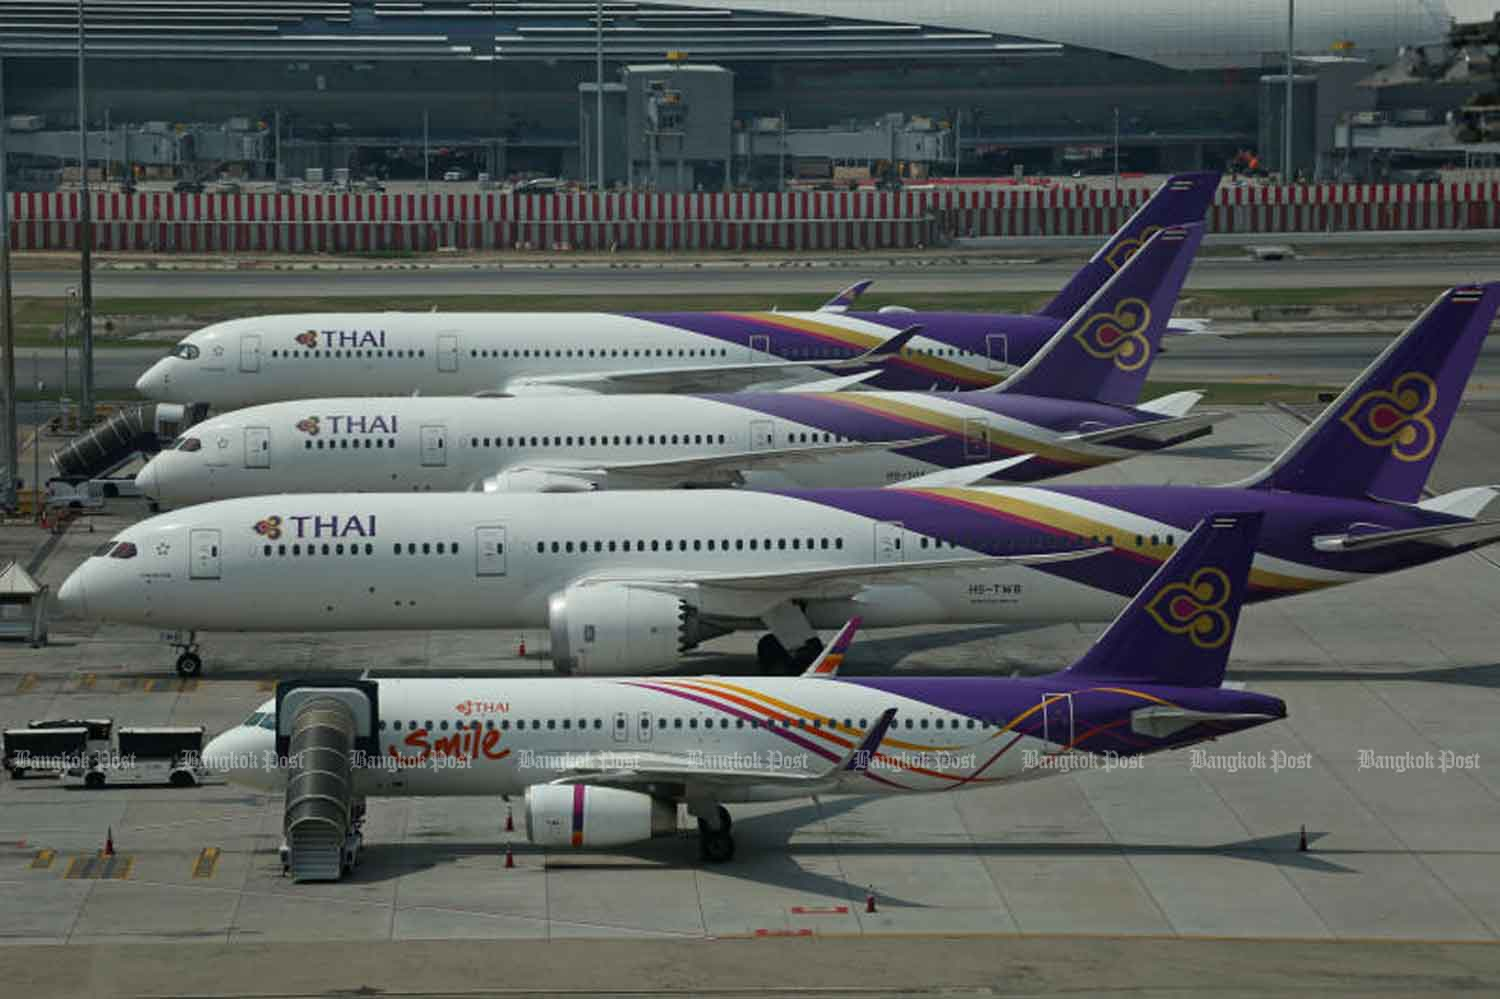 Thai Airways International planes remain parked at Suvarnabhumi airport in Samut Prakan province, grounded because of the Covid-19 pandemic. (Photo by Varuth Hirunyatheb)